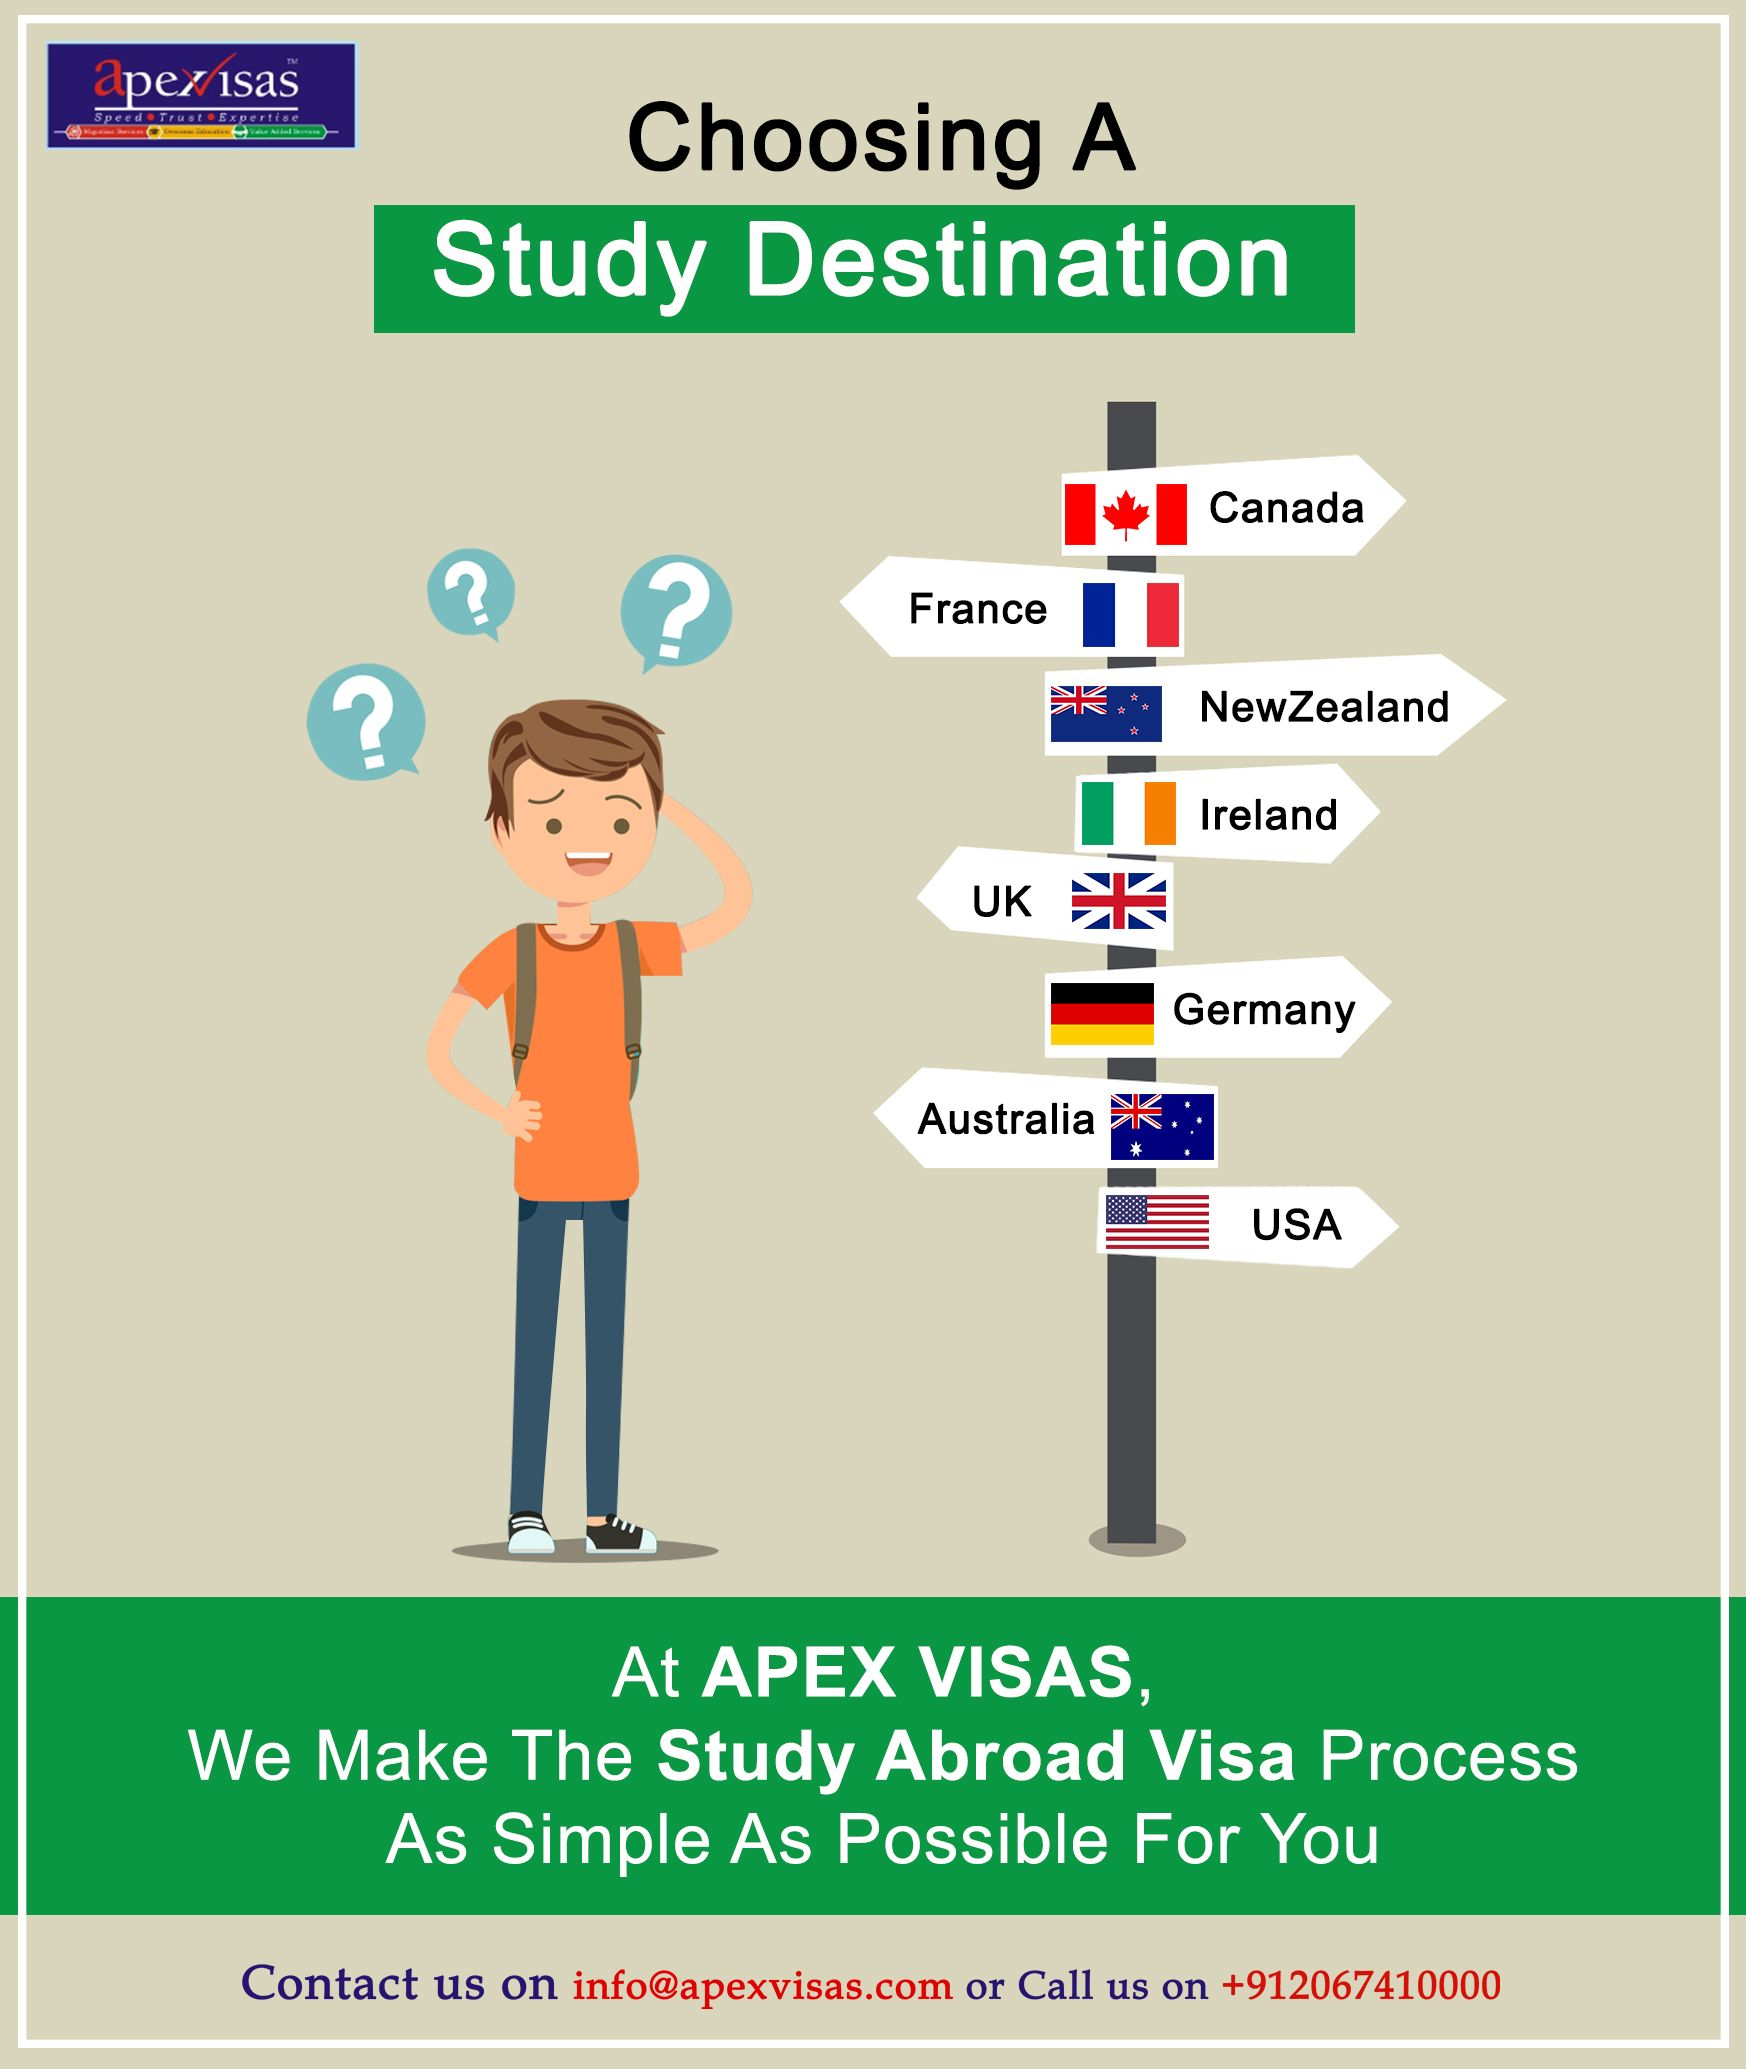 At Apexvisas We Make The Study Abroad Visa Process As Simple As Possible For You Immigration Visa Travel Ireland Uk Visa Study Abroad